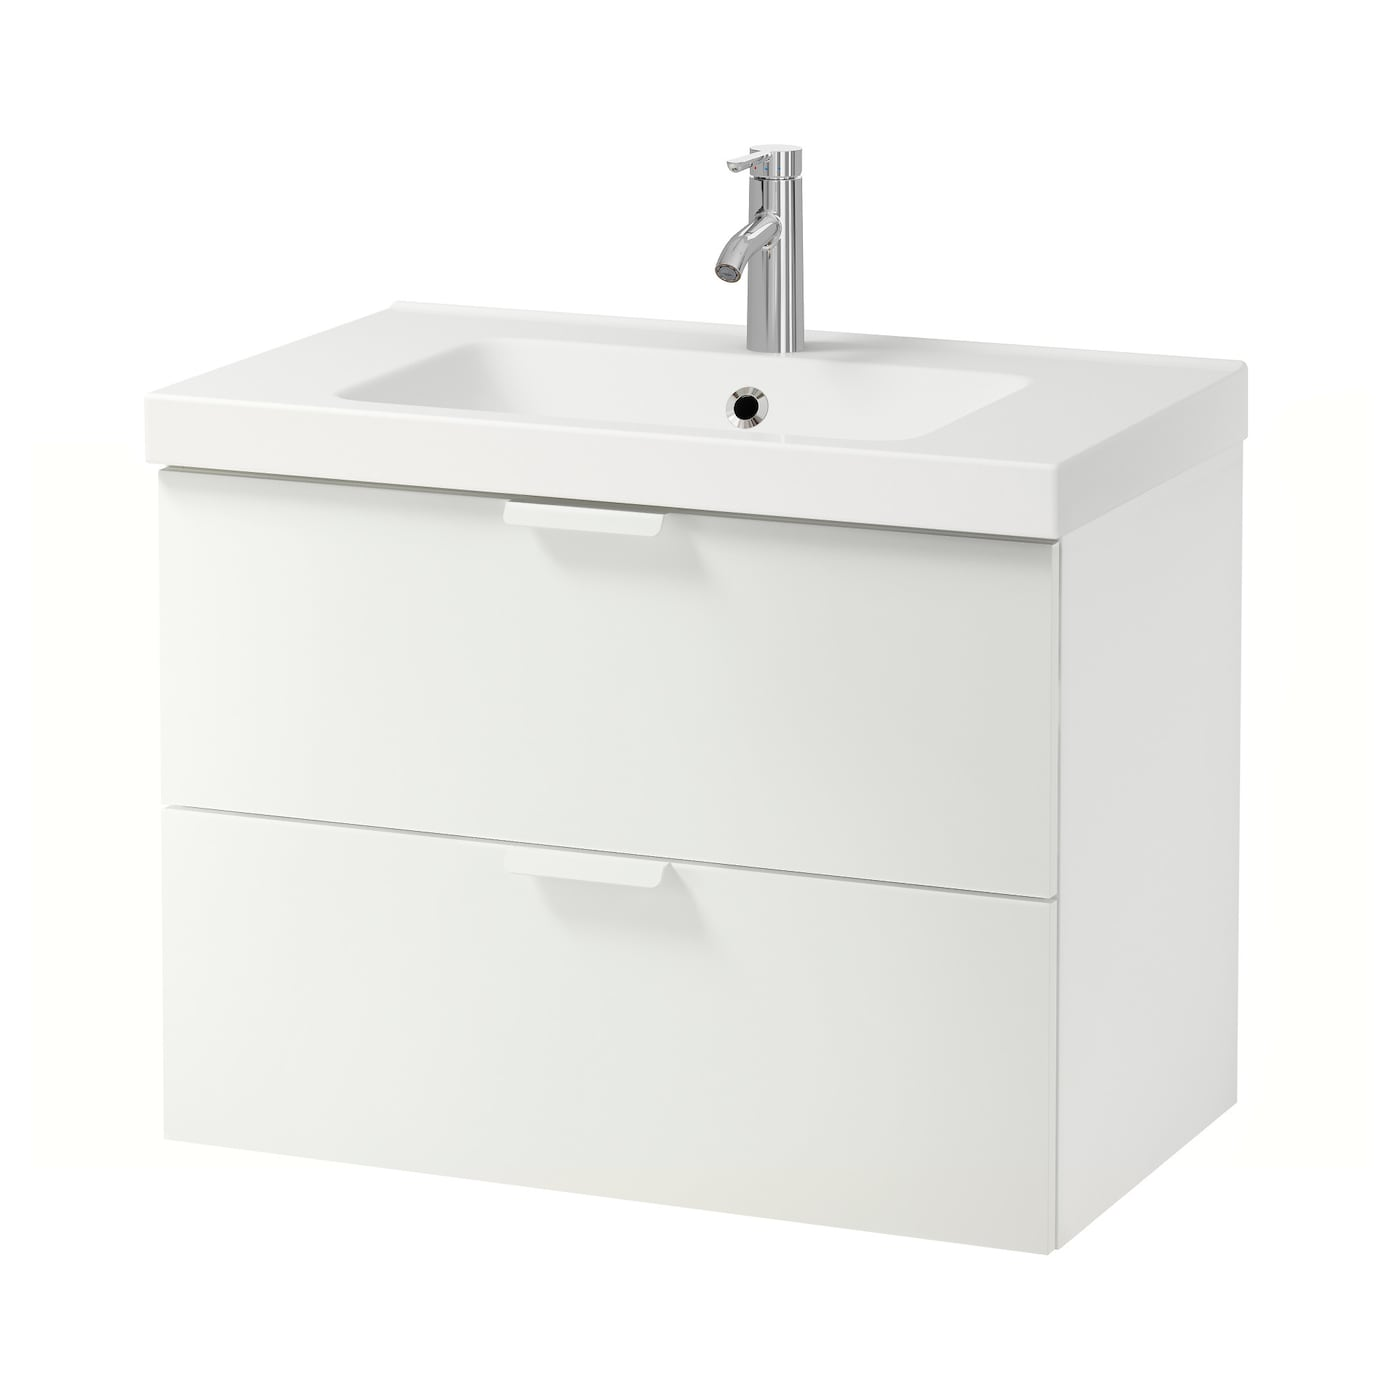 odensvik godmorgon meuble lavabo 2tir blanc 83x49x64 cm ikea. Black Bedroom Furniture Sets. Home Design Ideas